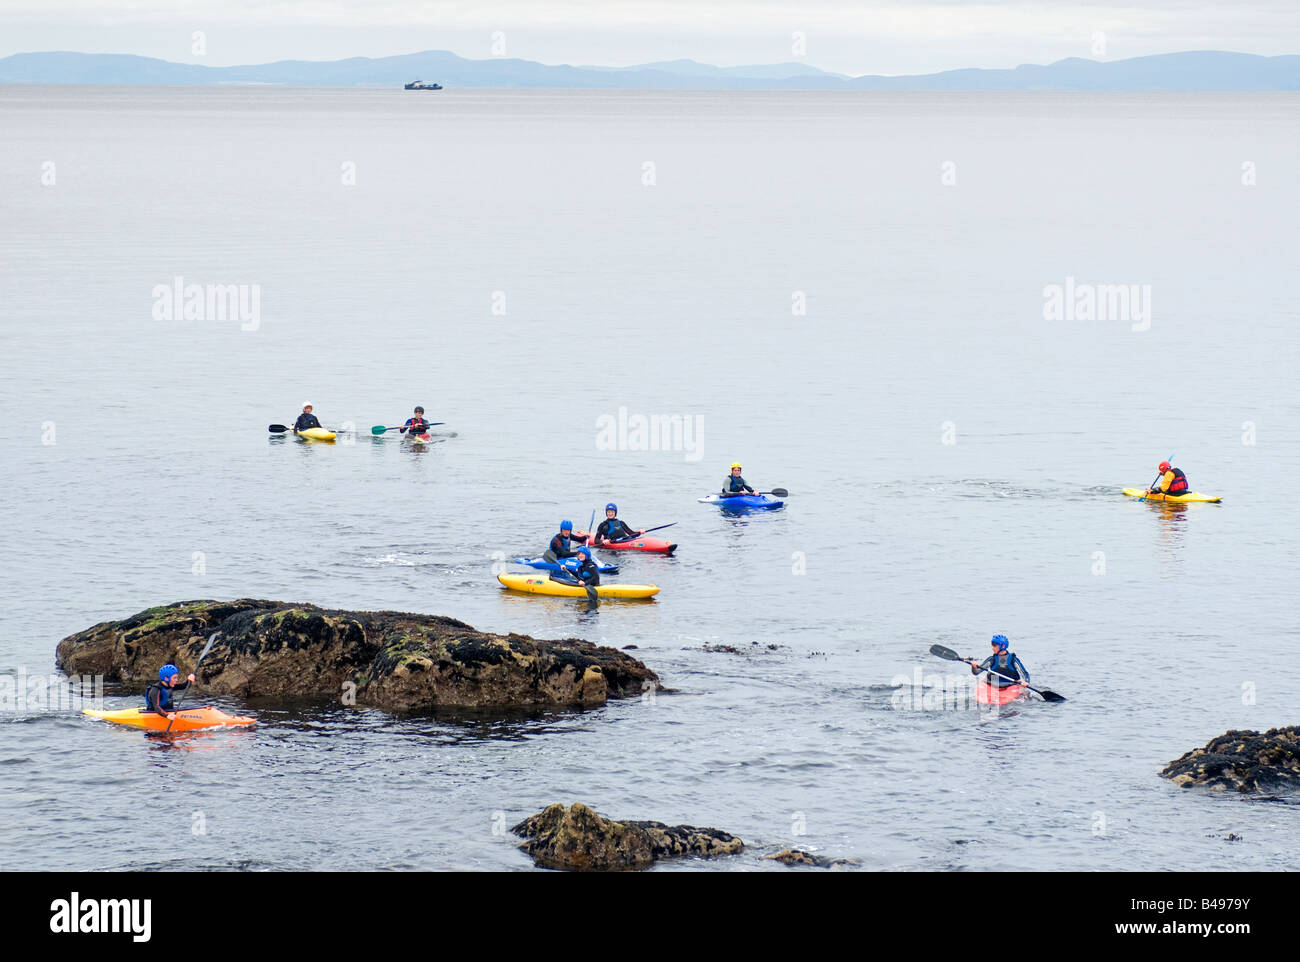 Sea Kayaking at Hopeman in the Moray Firth North East Scotland UK.  SCO 0762. - Stock Image